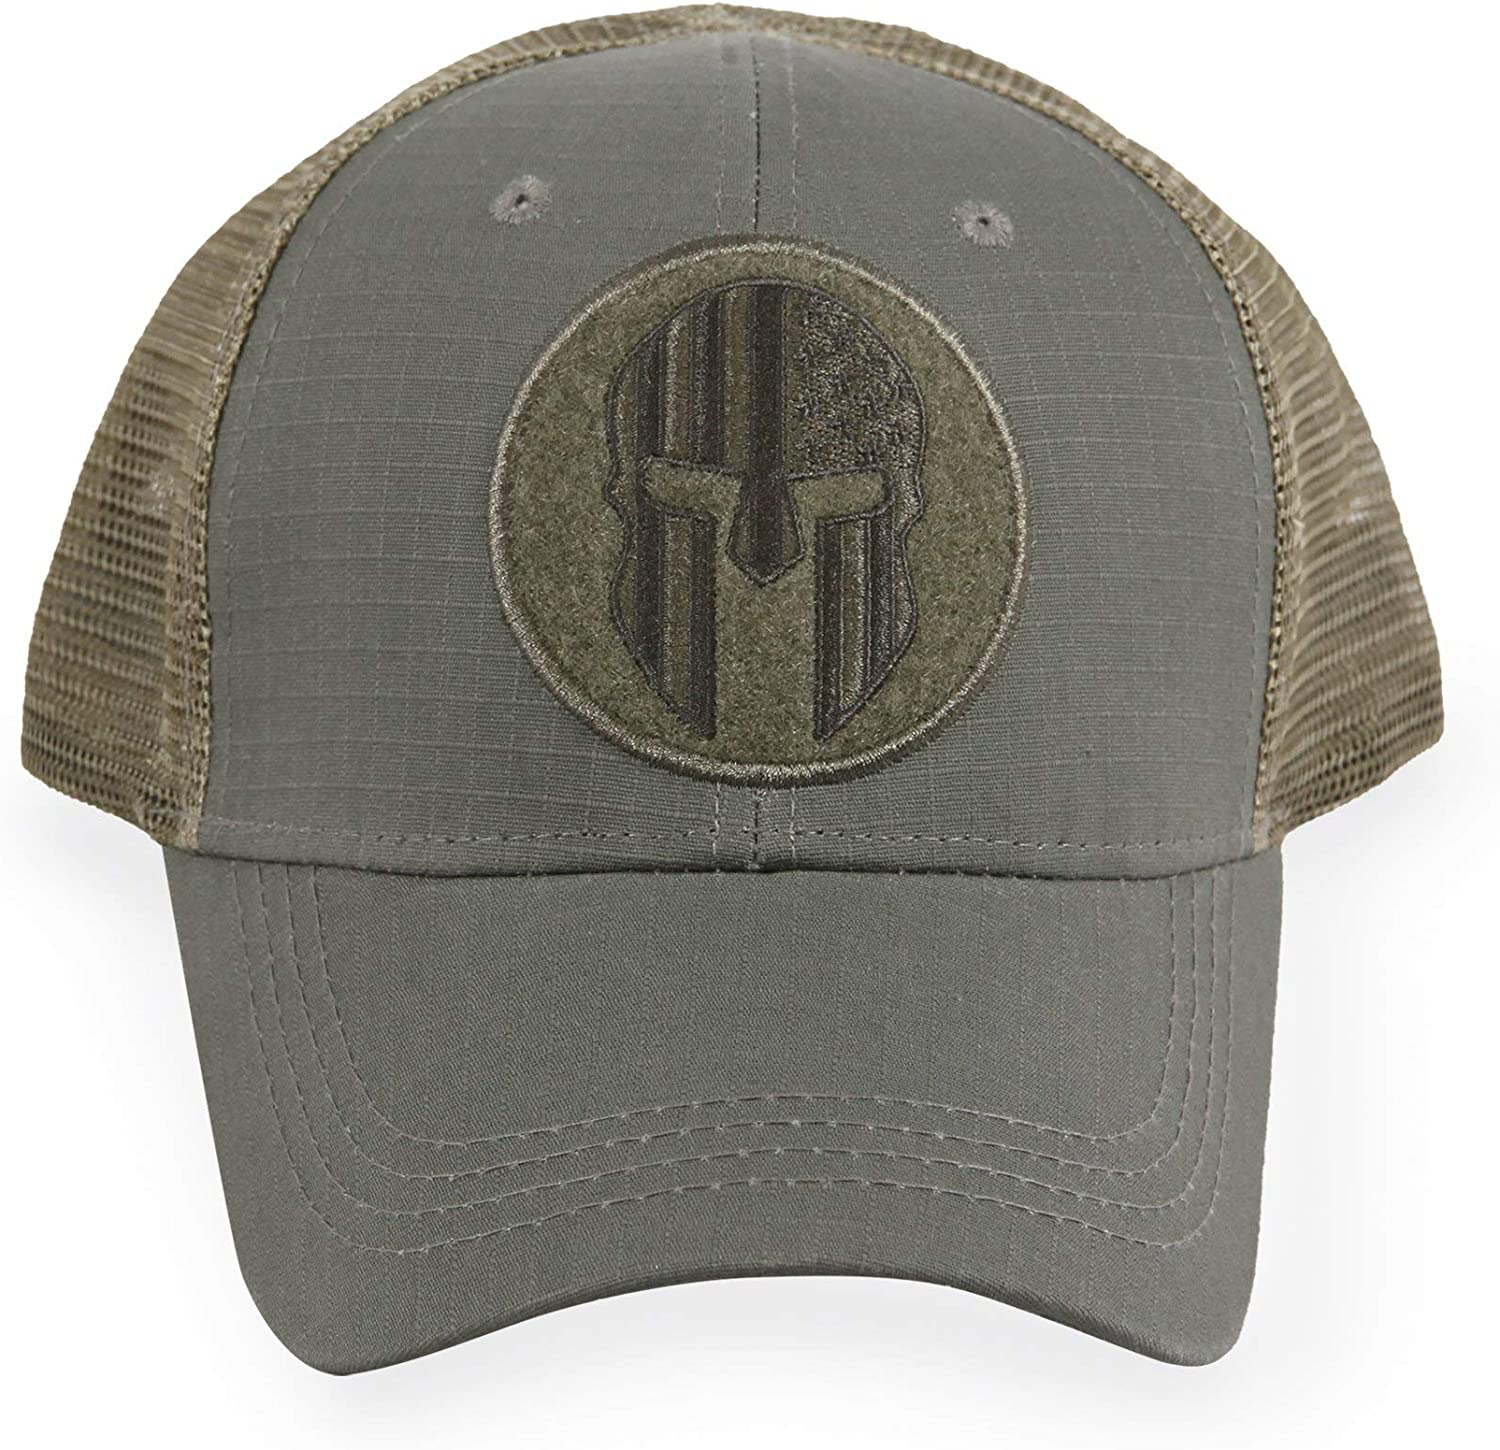 HIGHLAND TACTICAL Max 69% 2021 autumn and winter new OFF Spartan - Hat Trucker Mesh